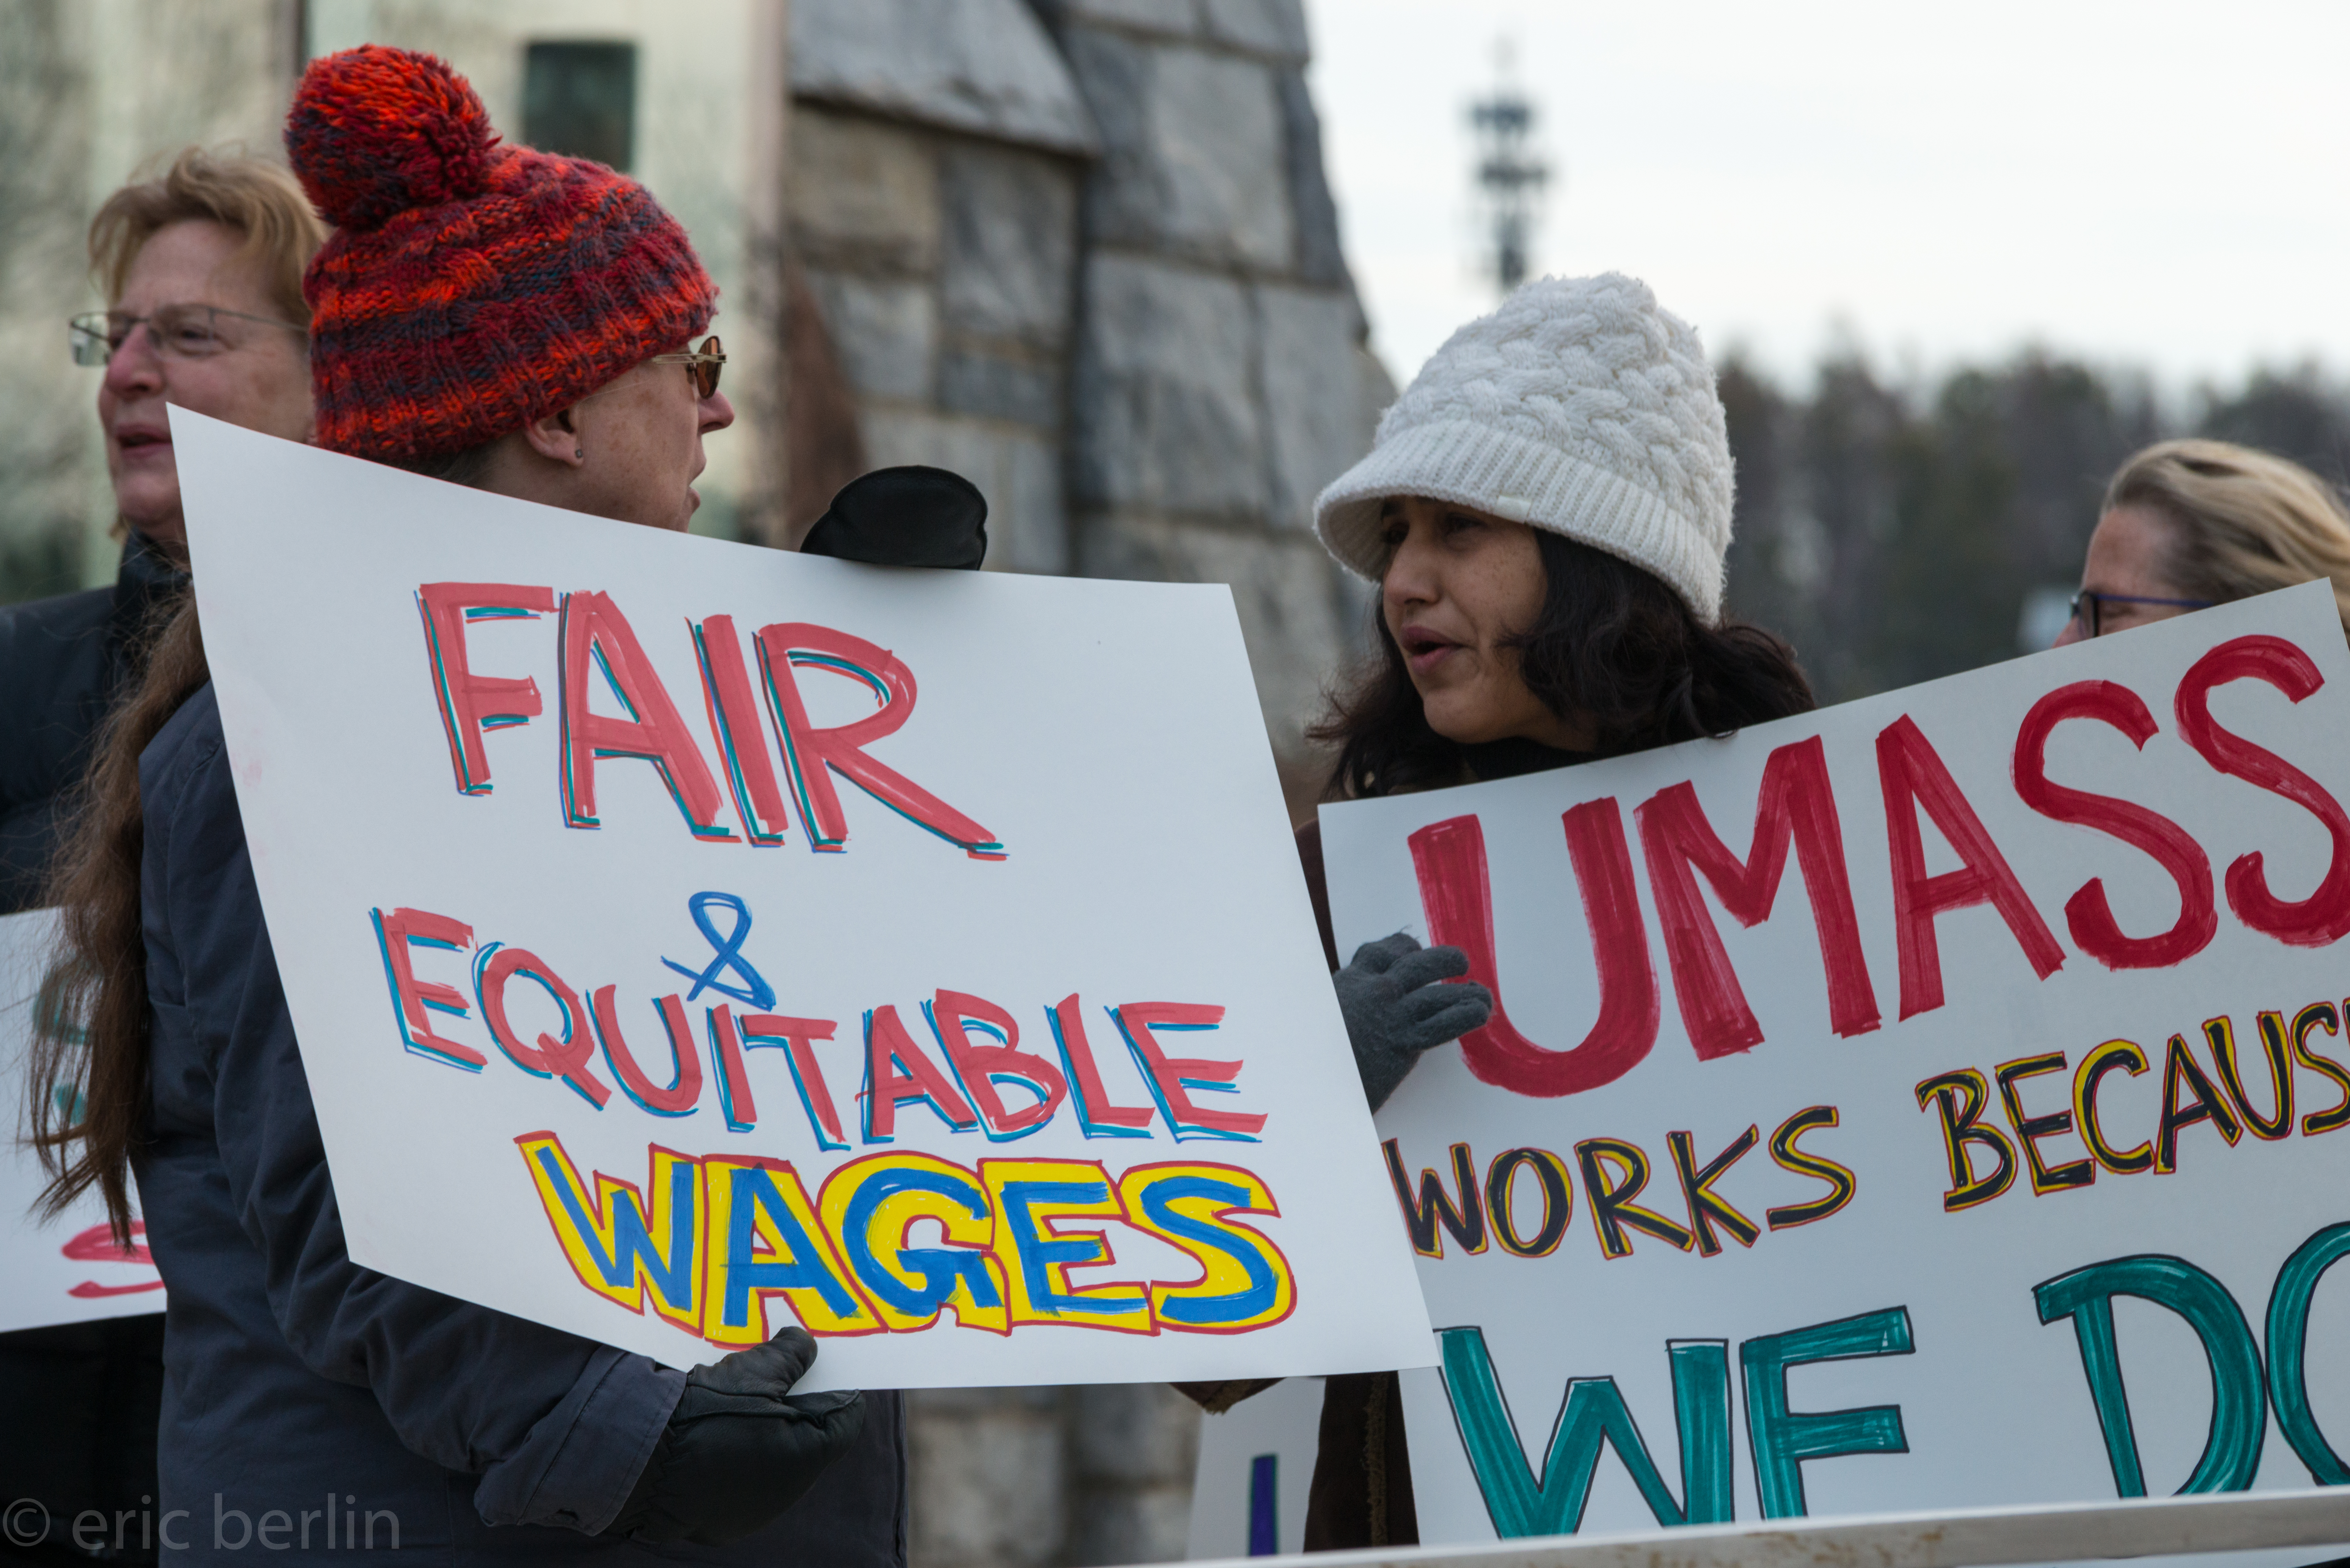 UMass unions take contract demands to trustees